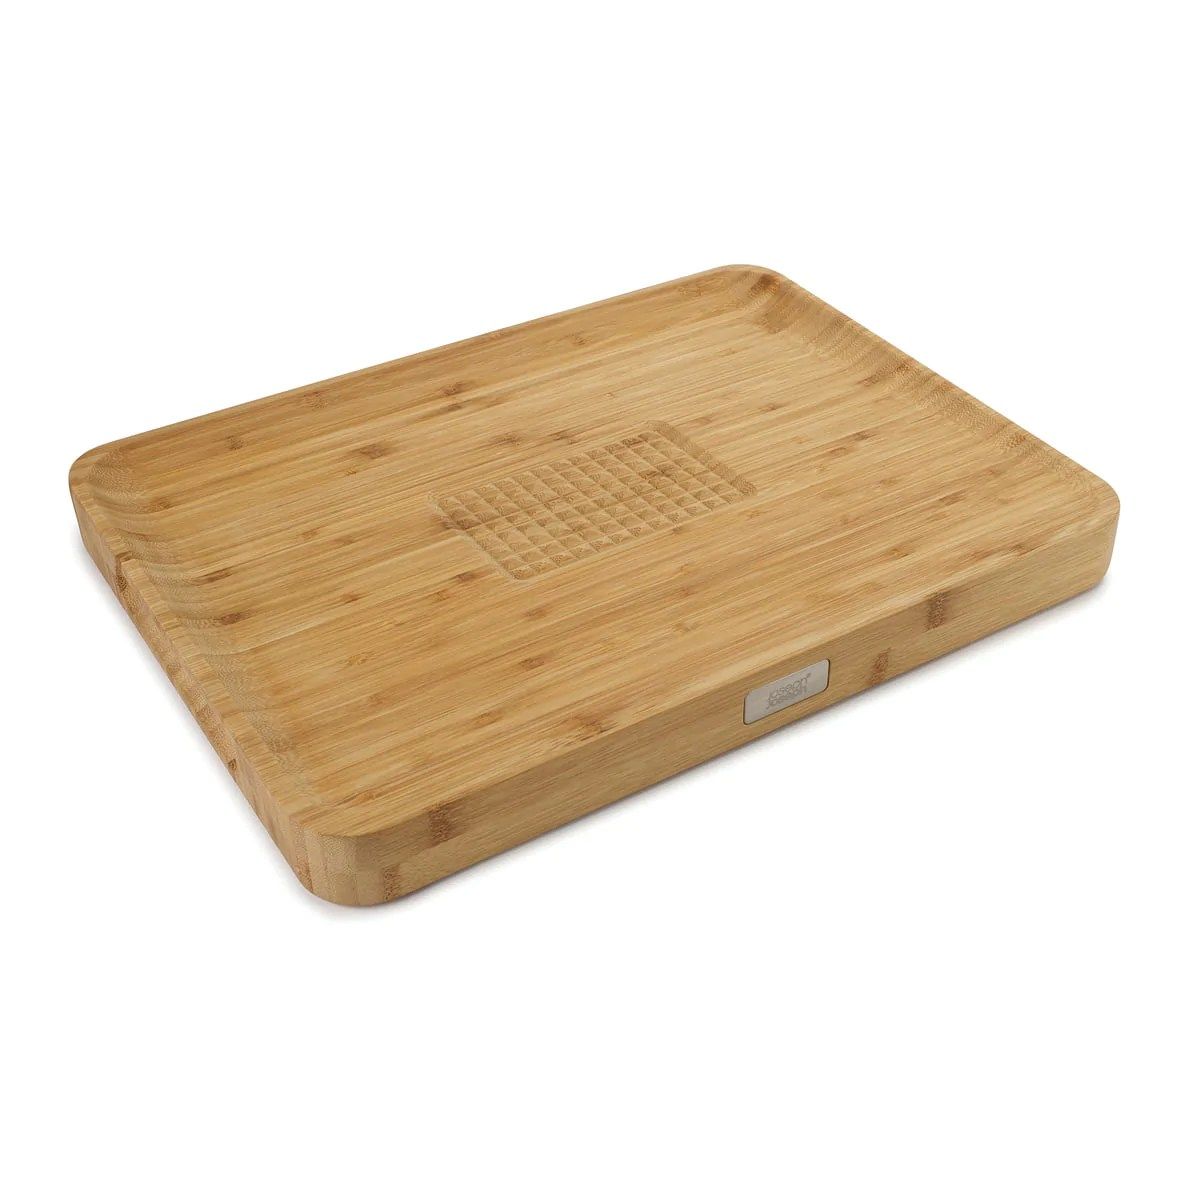 Tablet Küchenbrett Joseph Joseph Cut Carve Bamboo Chopping Board